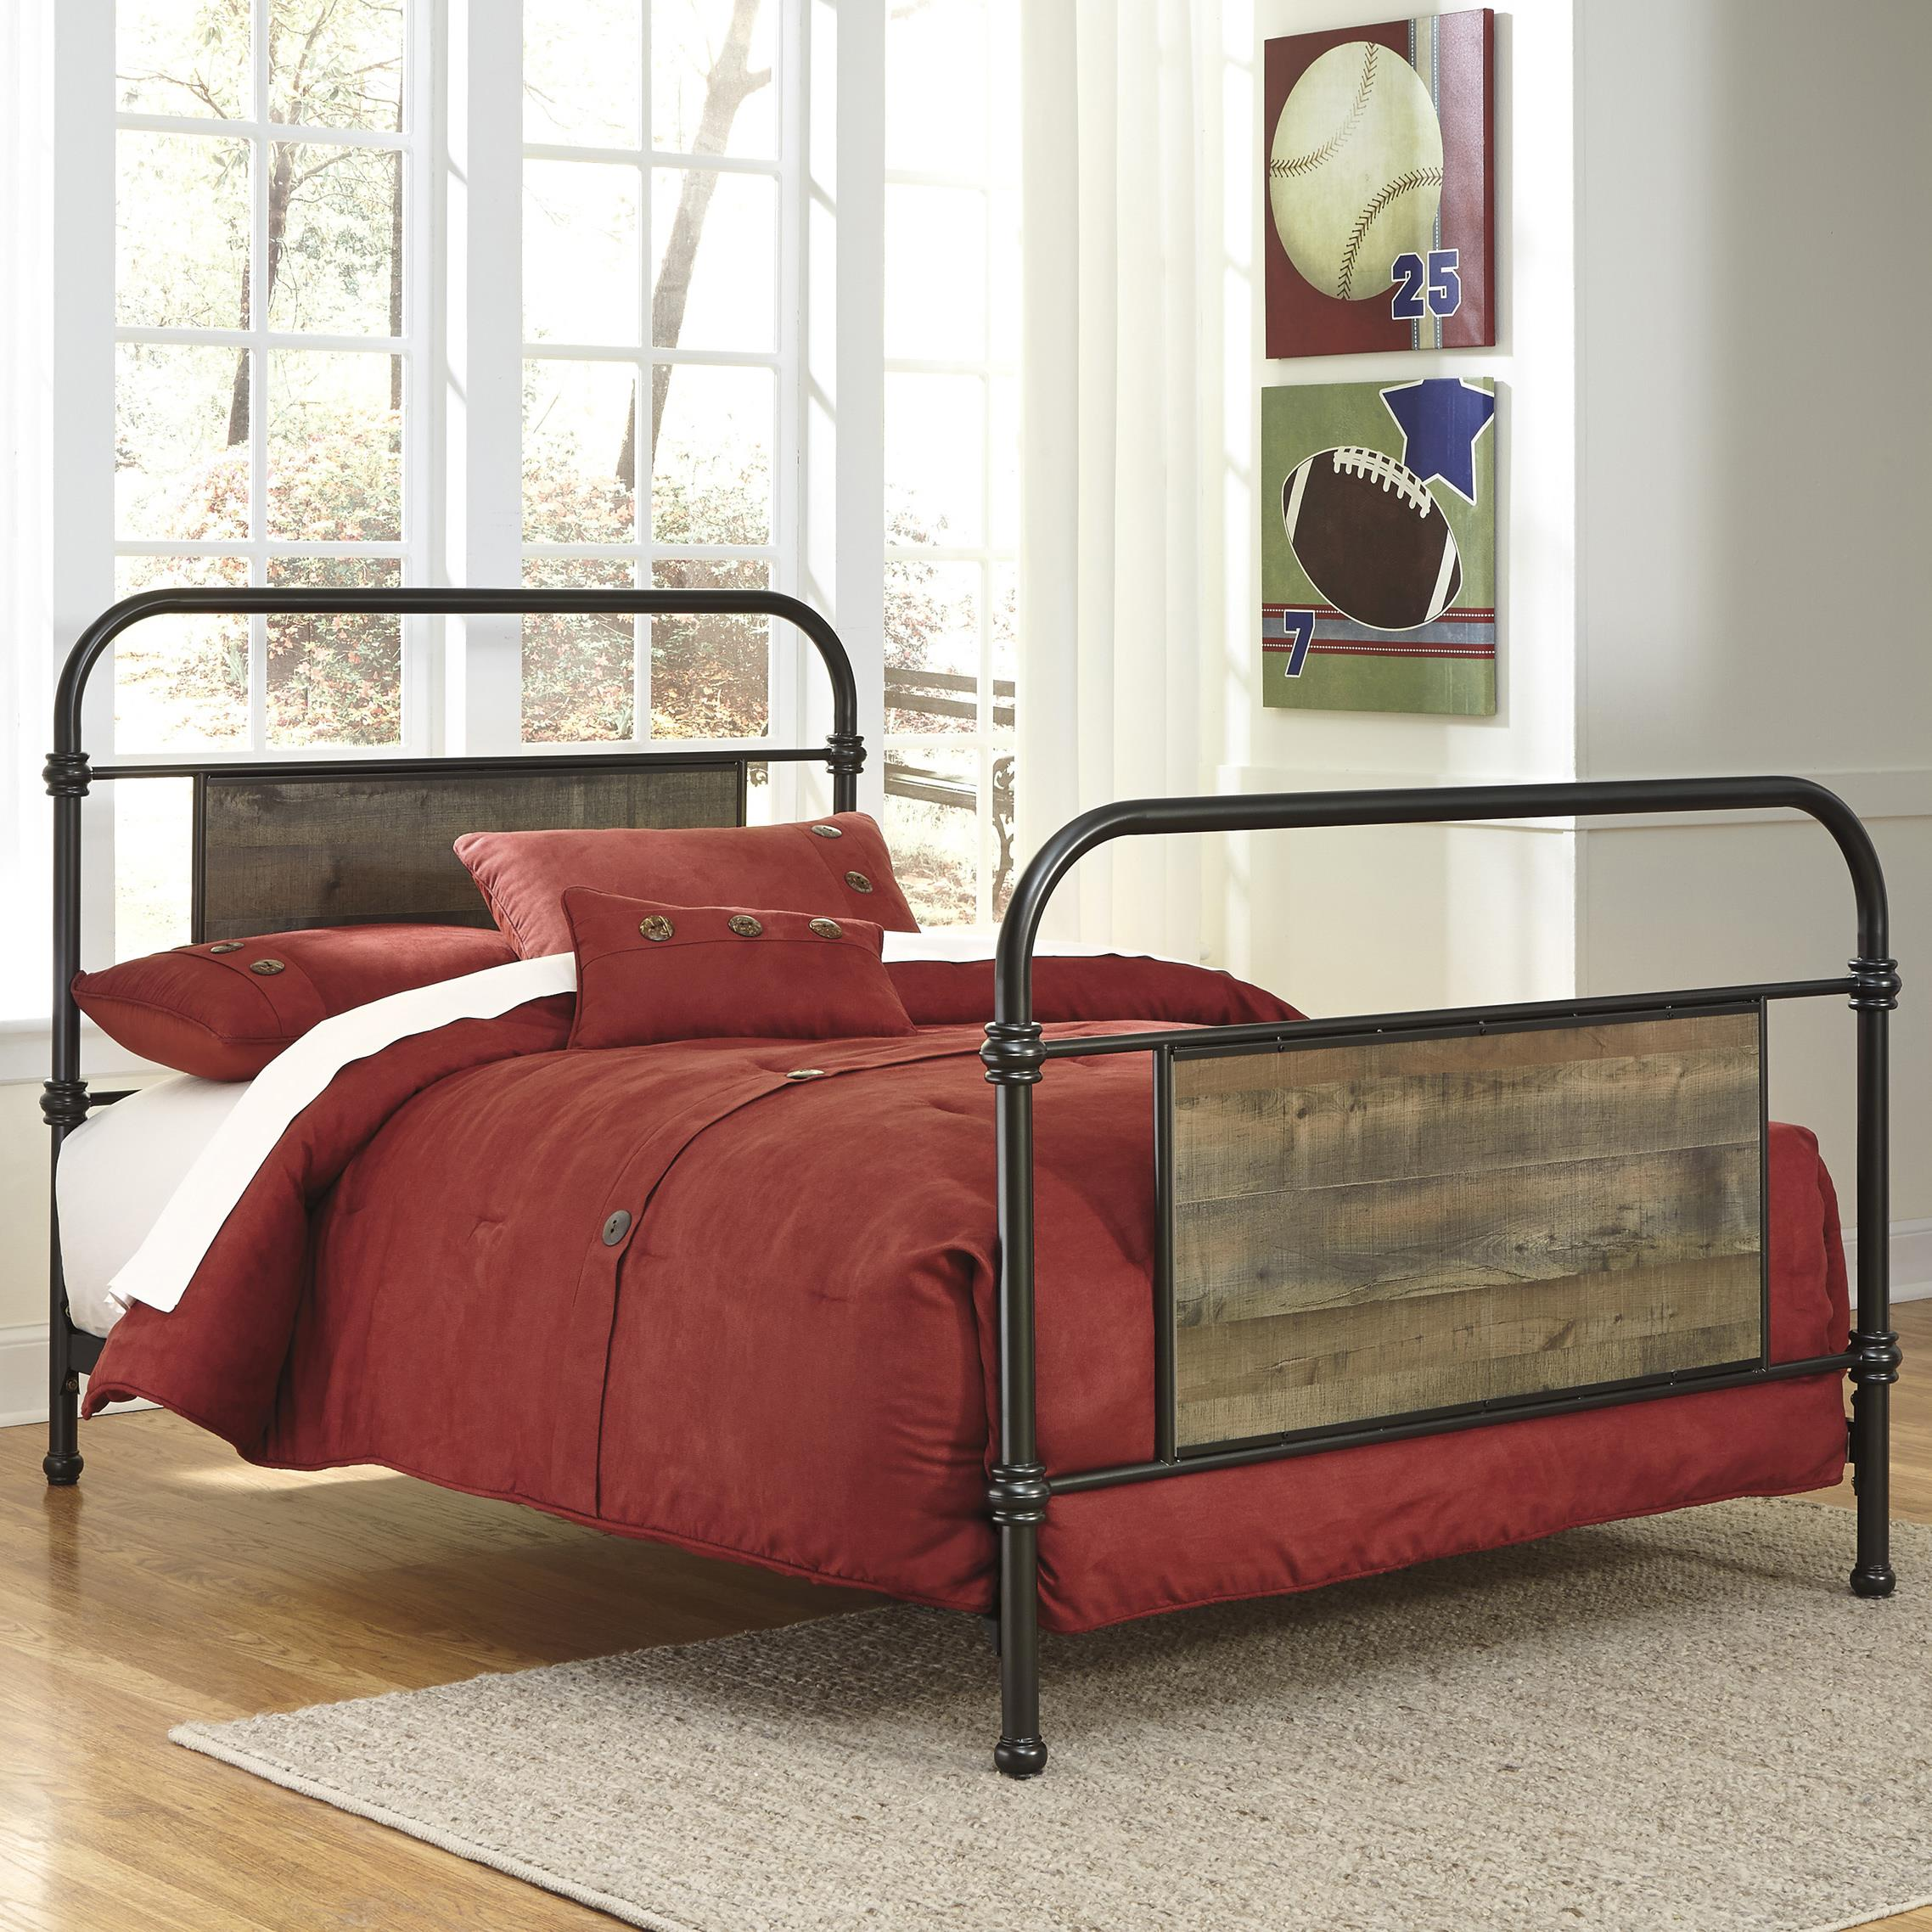 Signature Design by Ashley Trinell Full Metal Bed with Rustic Finish Panels - Item Number: B446-72